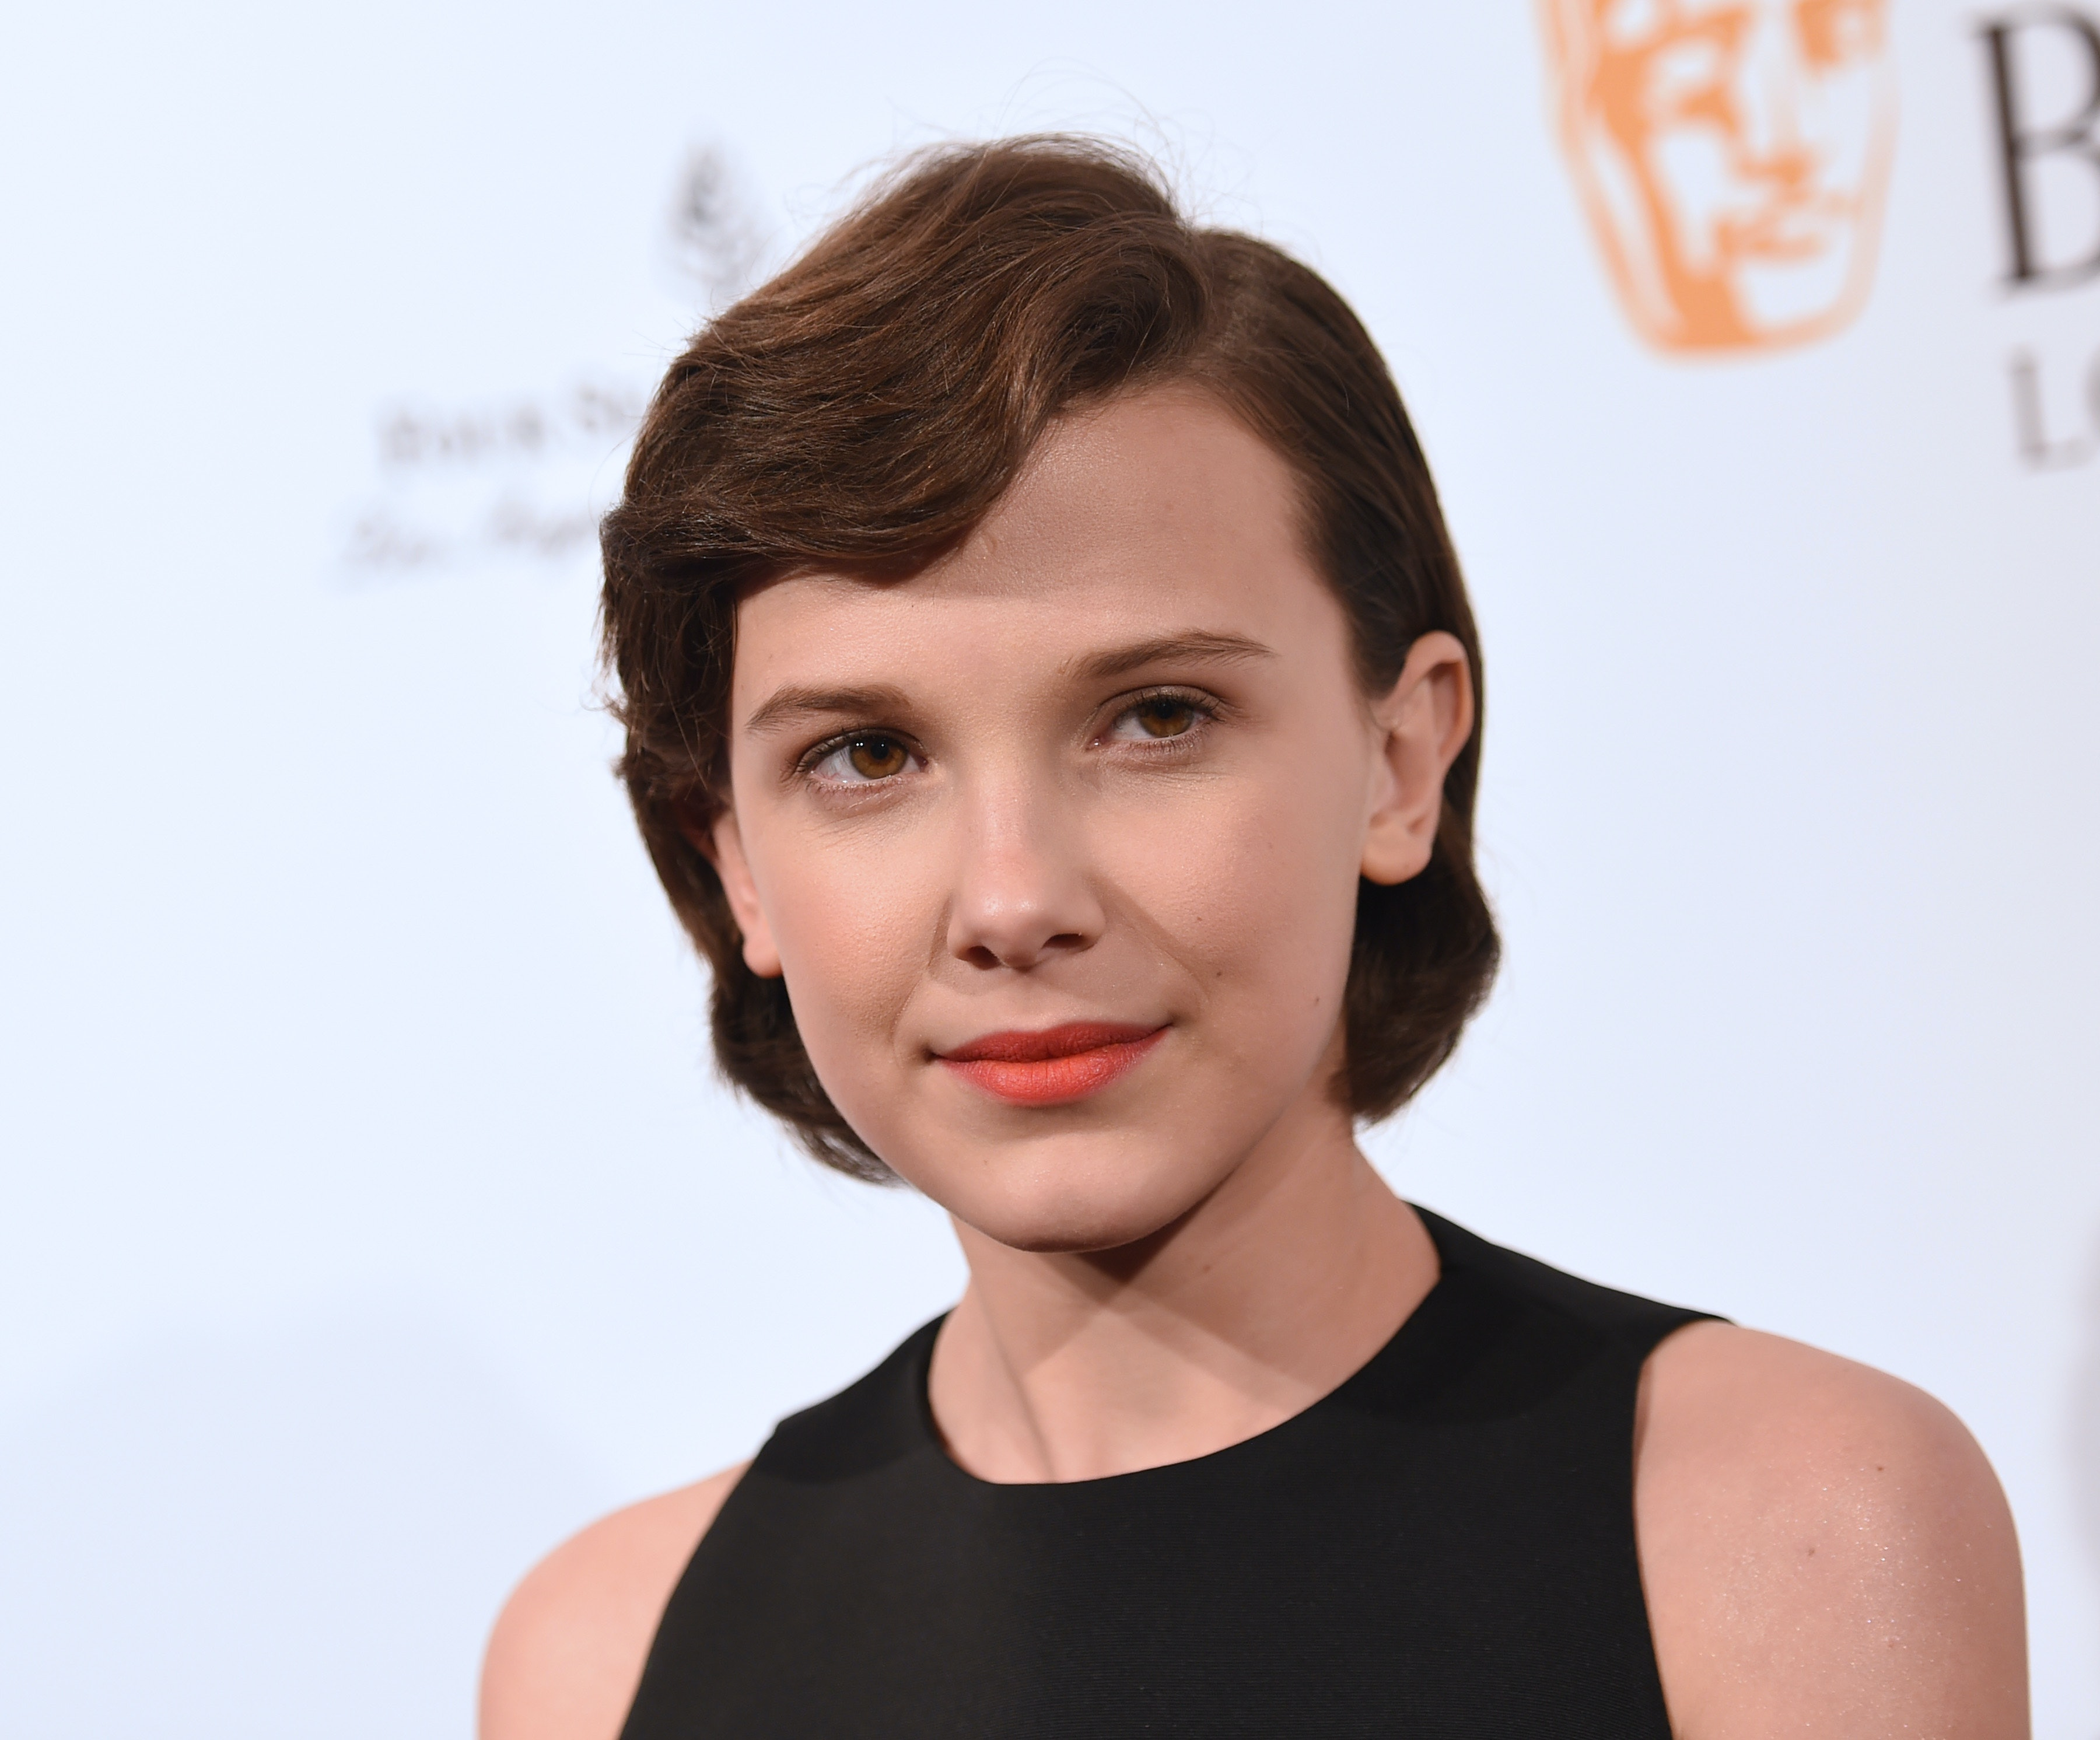 Millie Bobby Brown's Dress At The Golden Globes: Stunning In Silver